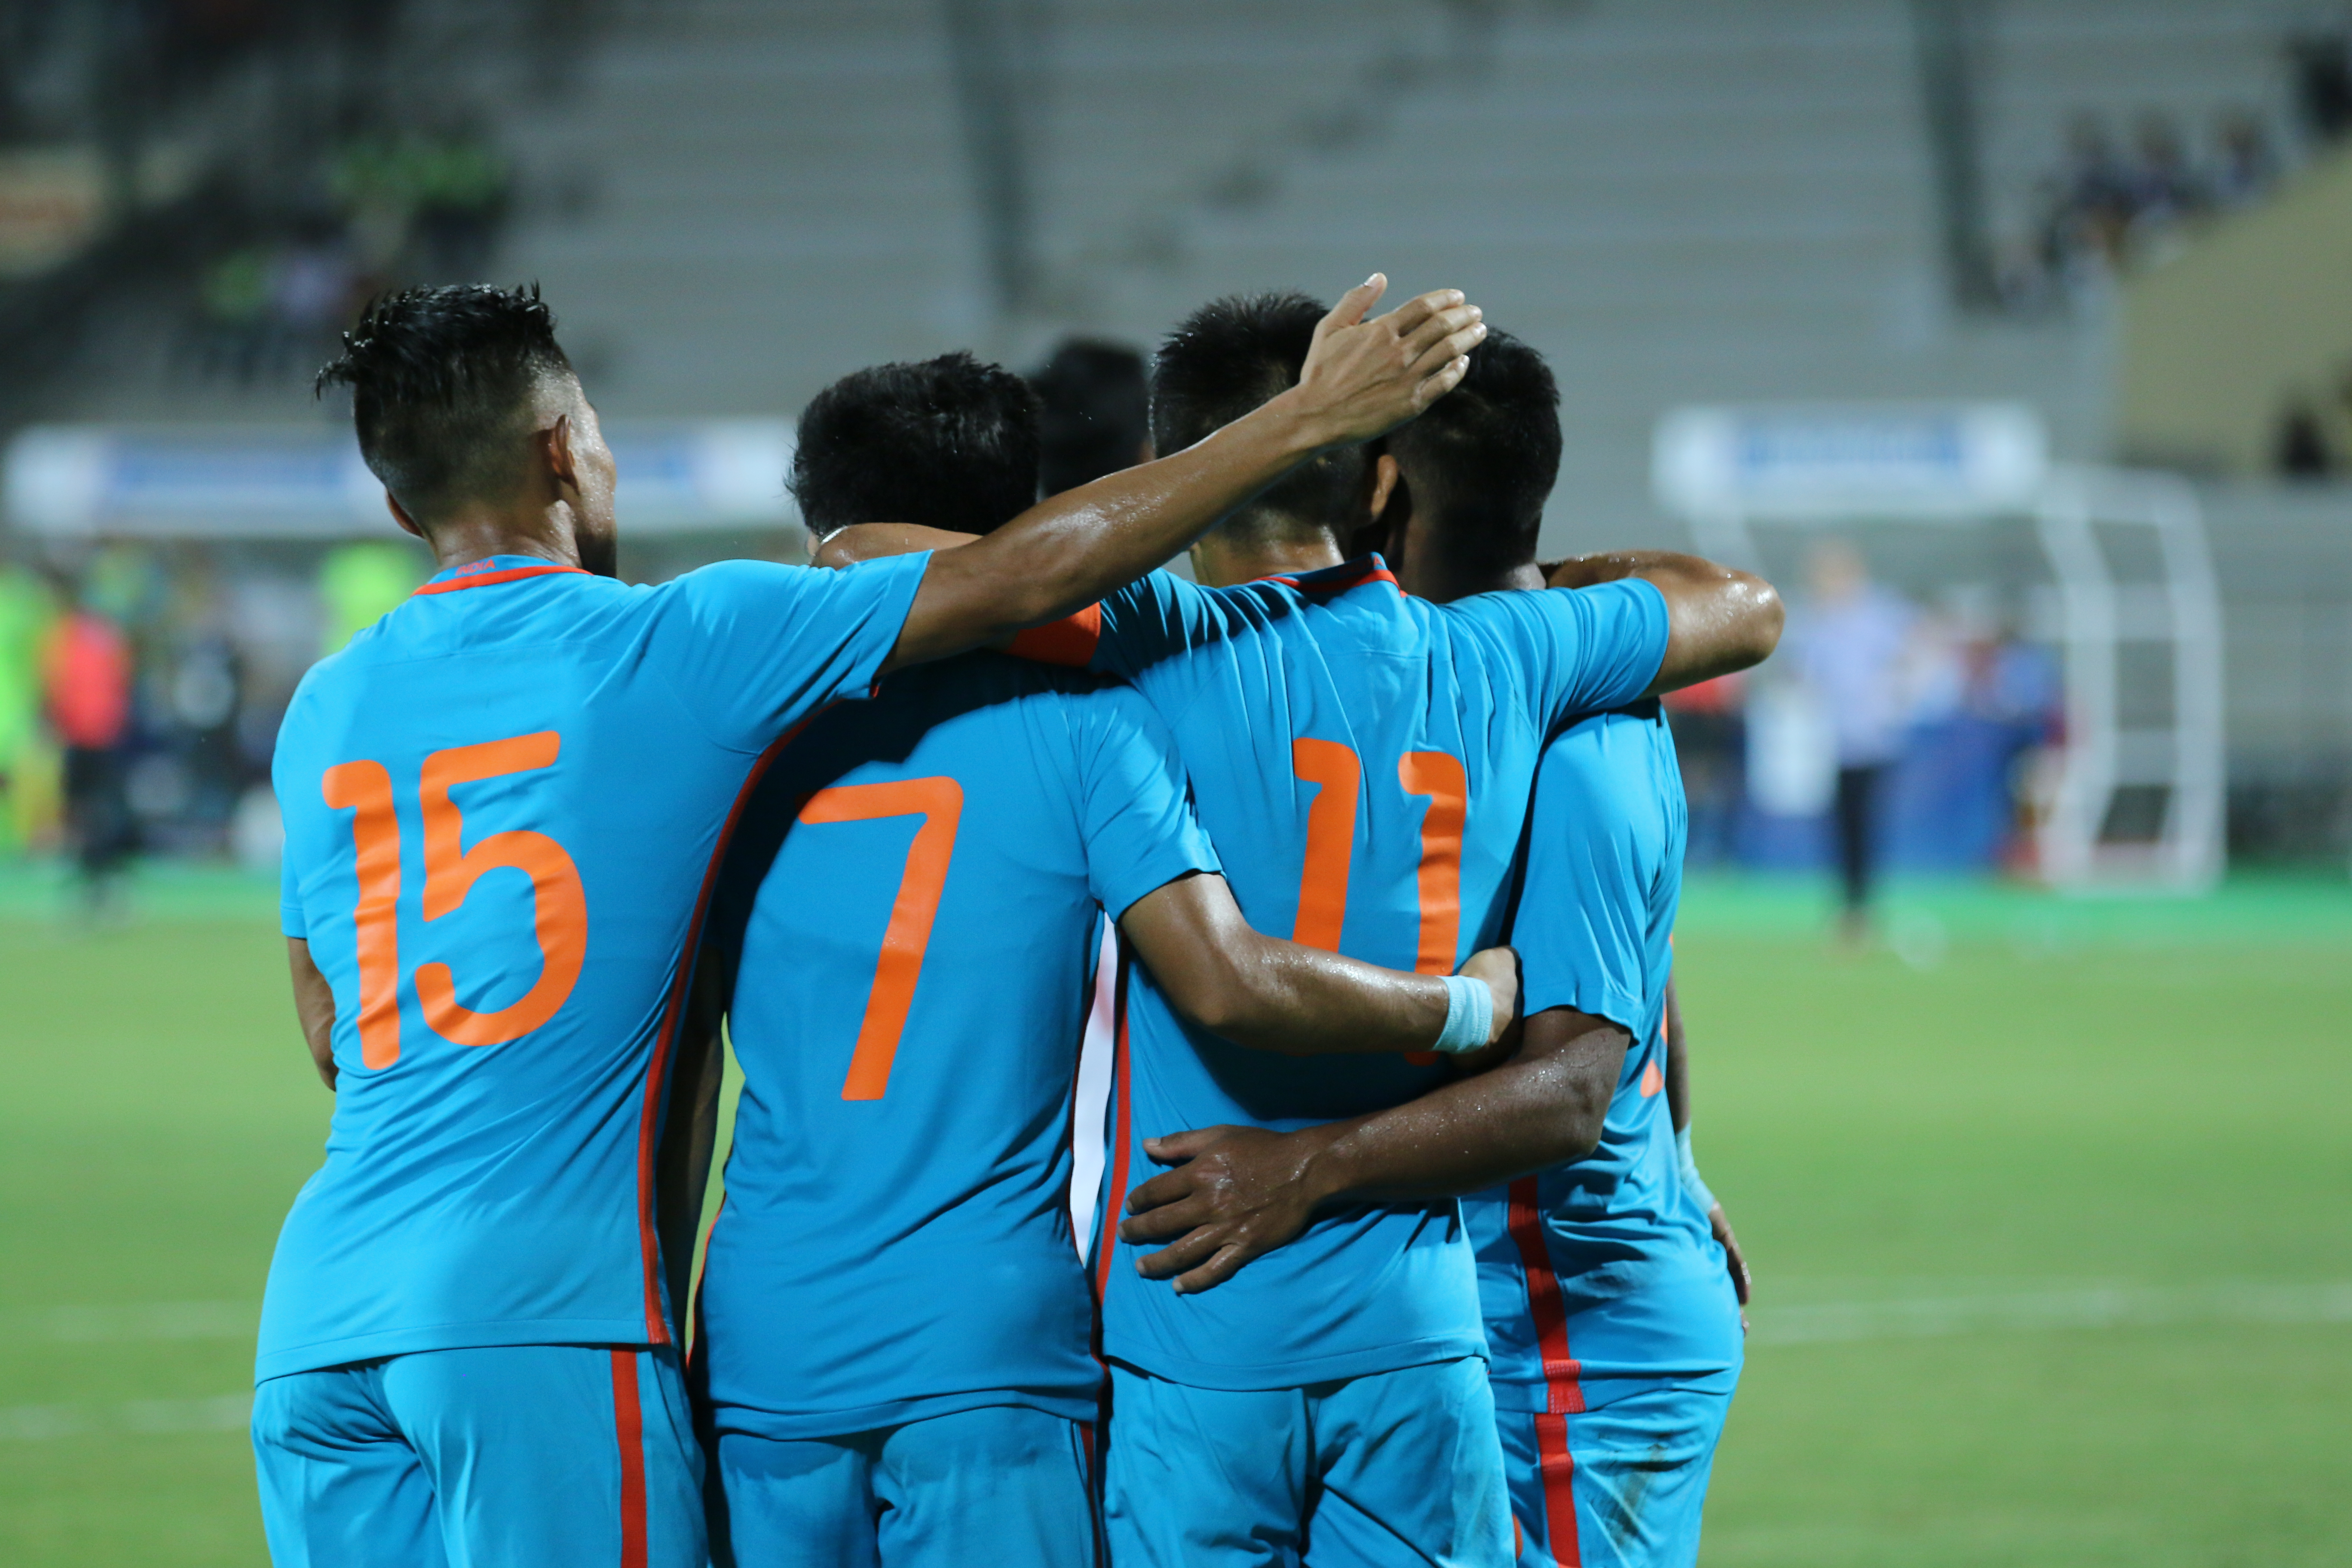 Intercontinental Cup 2018 LIVE: India vs New Zealand